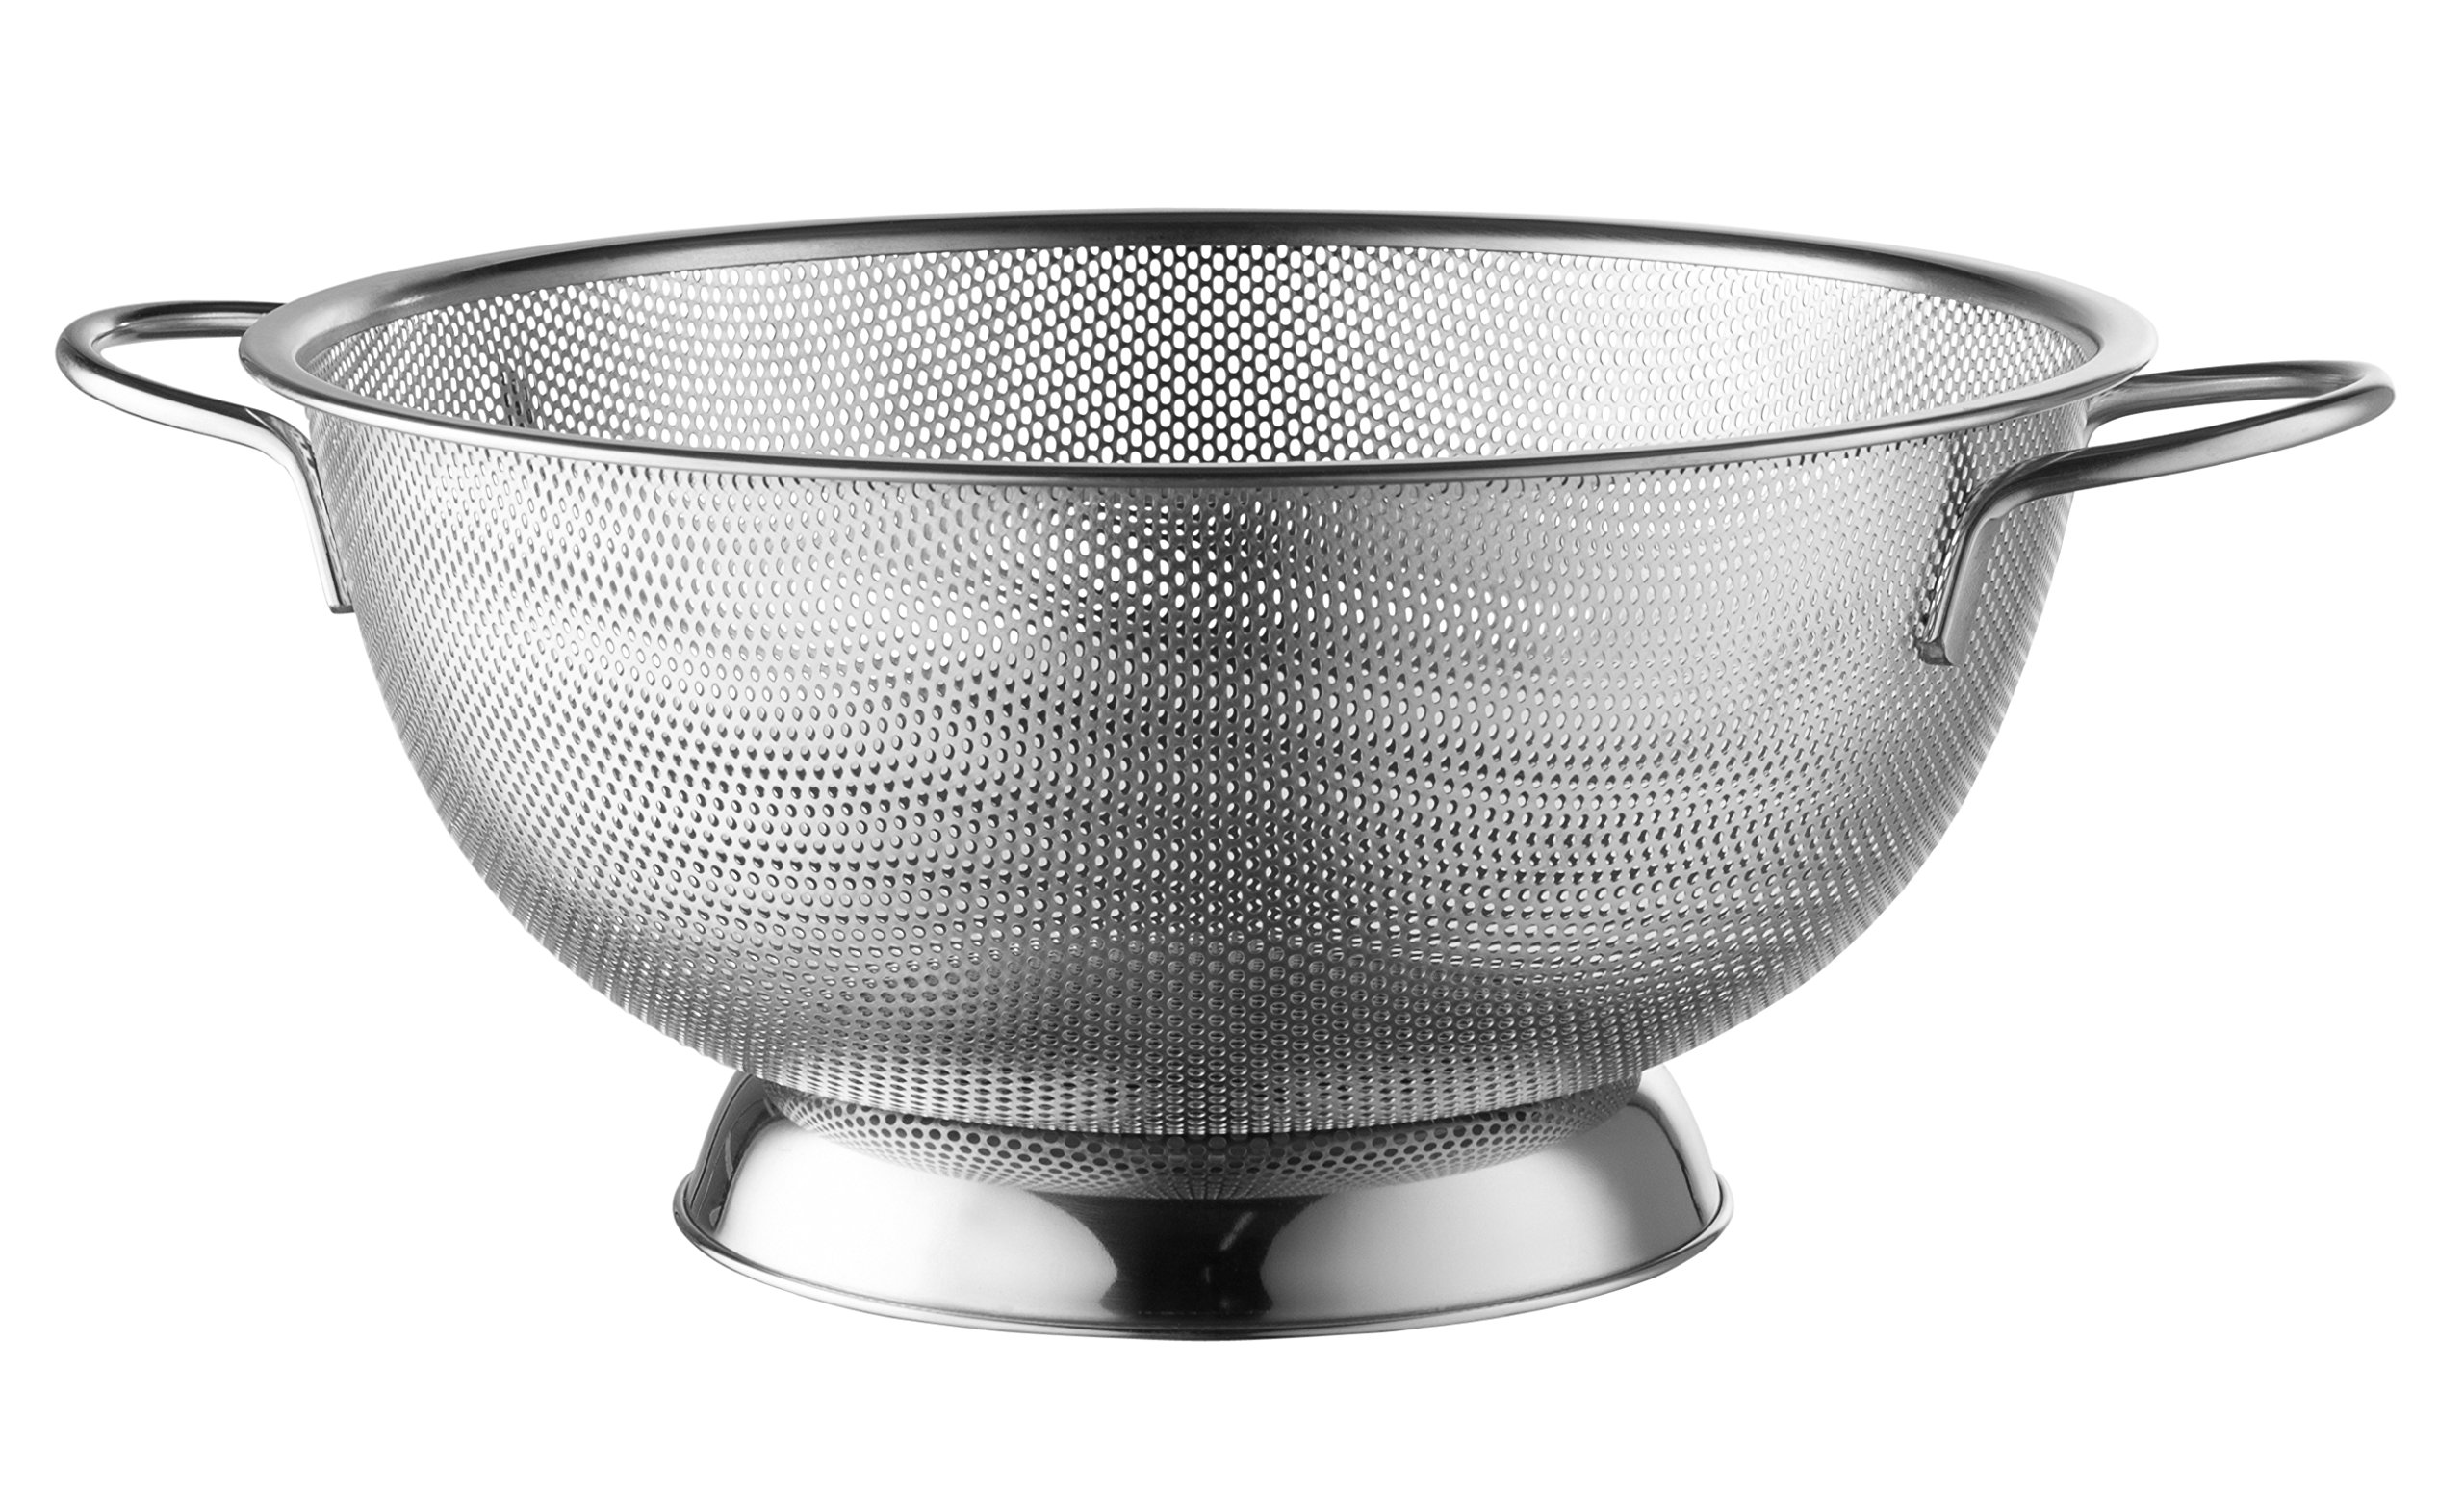 Modern Innovations Micro-Perforated 5 Quart Stainless Steel Colander Or Strainer Made With Fine Wire Mesh Perfect As A Spaghetti Strainer Kitchen Strainer Rice Strainer And Food Strainer by Modern Innovations